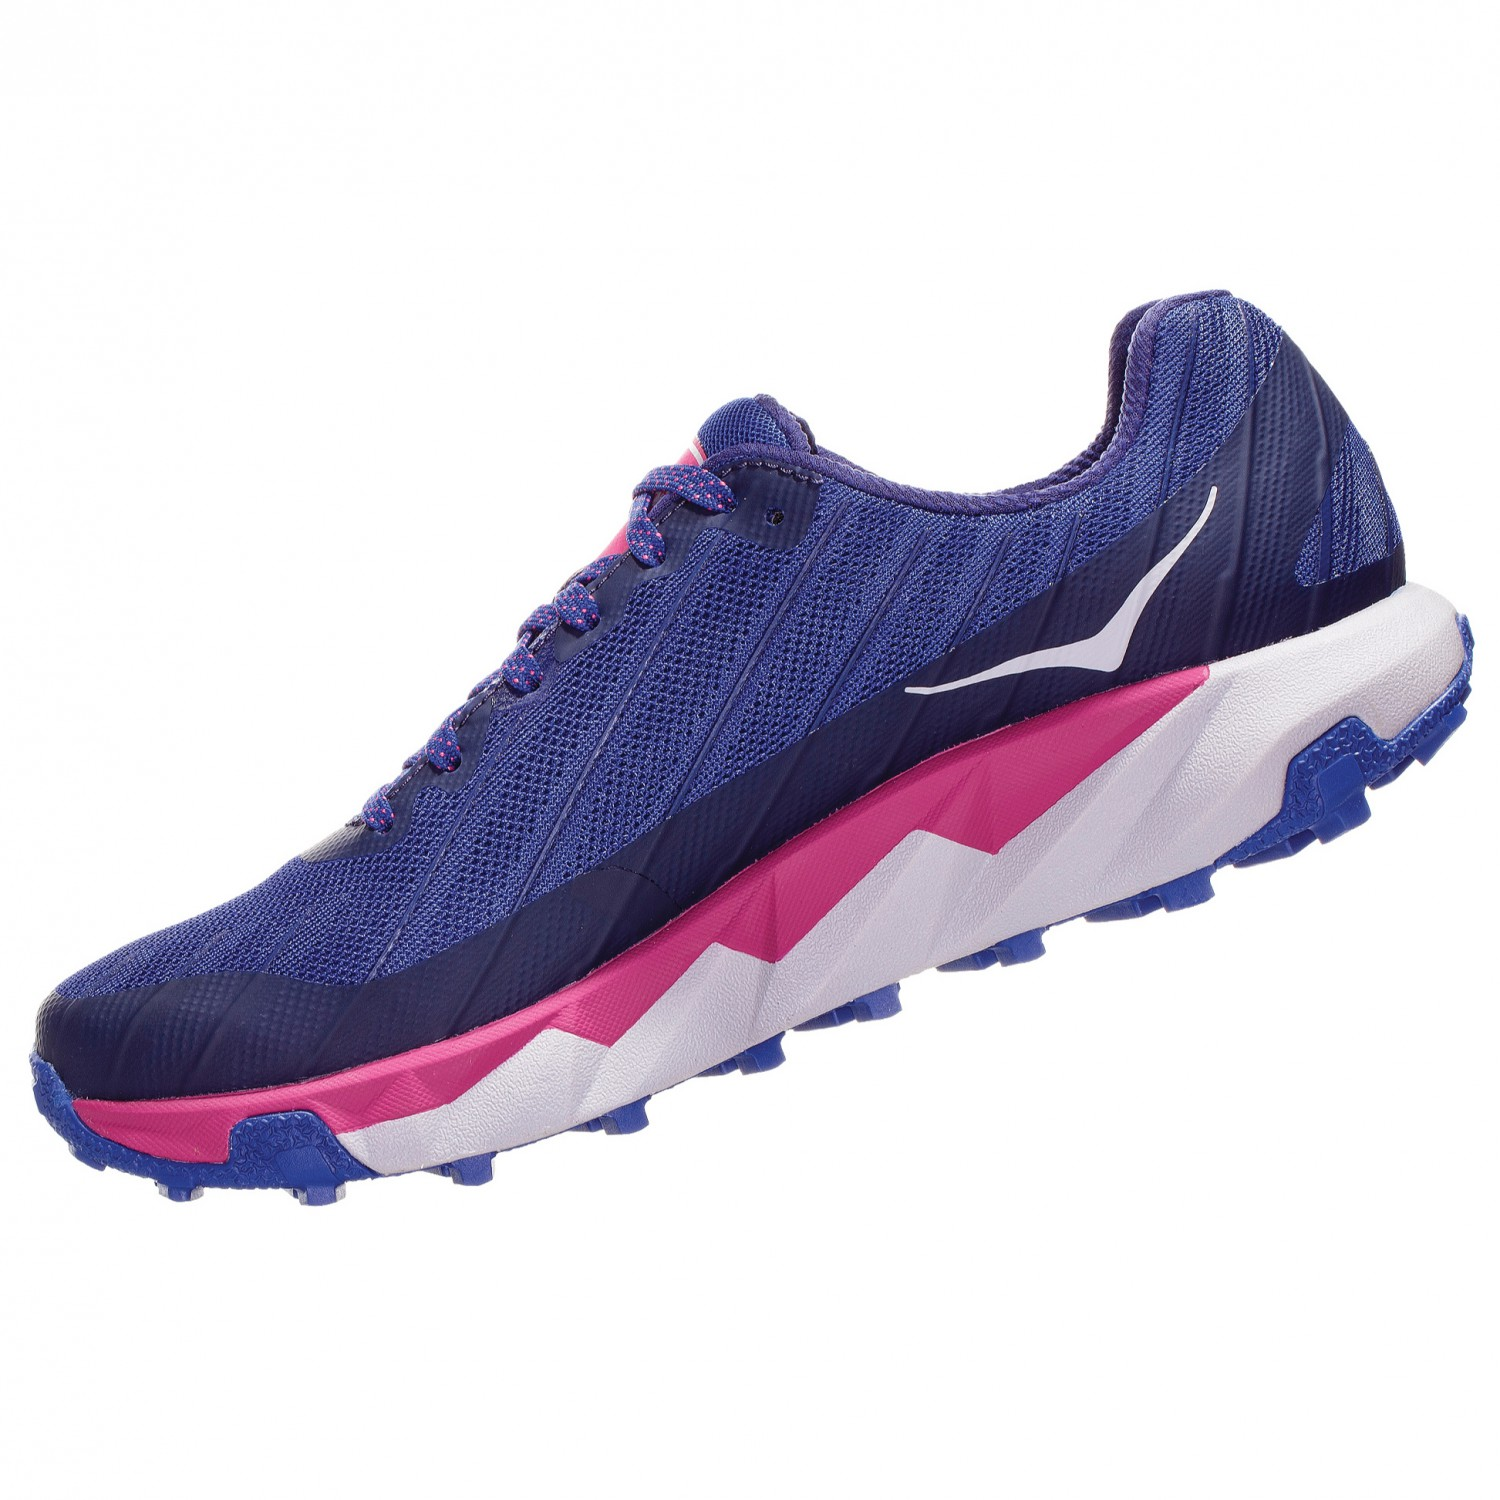 ... Hoka One One - Women s Torrent - Trail running shoes ... 1efc83d0dae